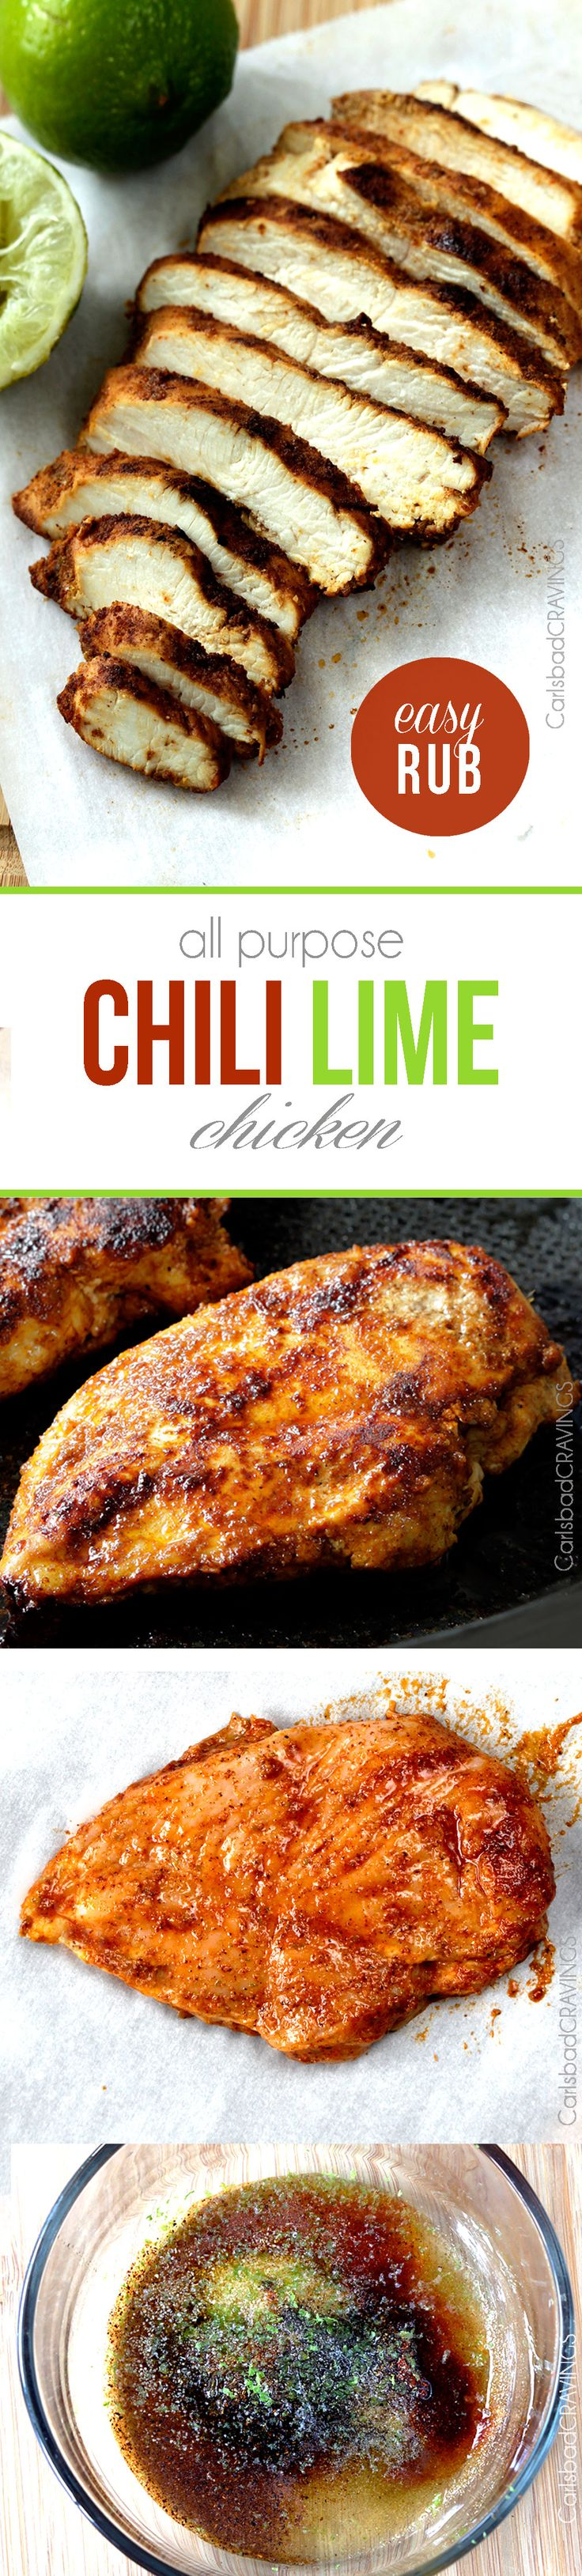 All Purpose Chili Lime Chicken so moist, tender and exploding with flavor from an EASY rub - perfect for salad, burritos, pasta, tacos etc. I love having this on hand! #chililimechicken #mexicanchicken #limechicken via @carlsbadcraving